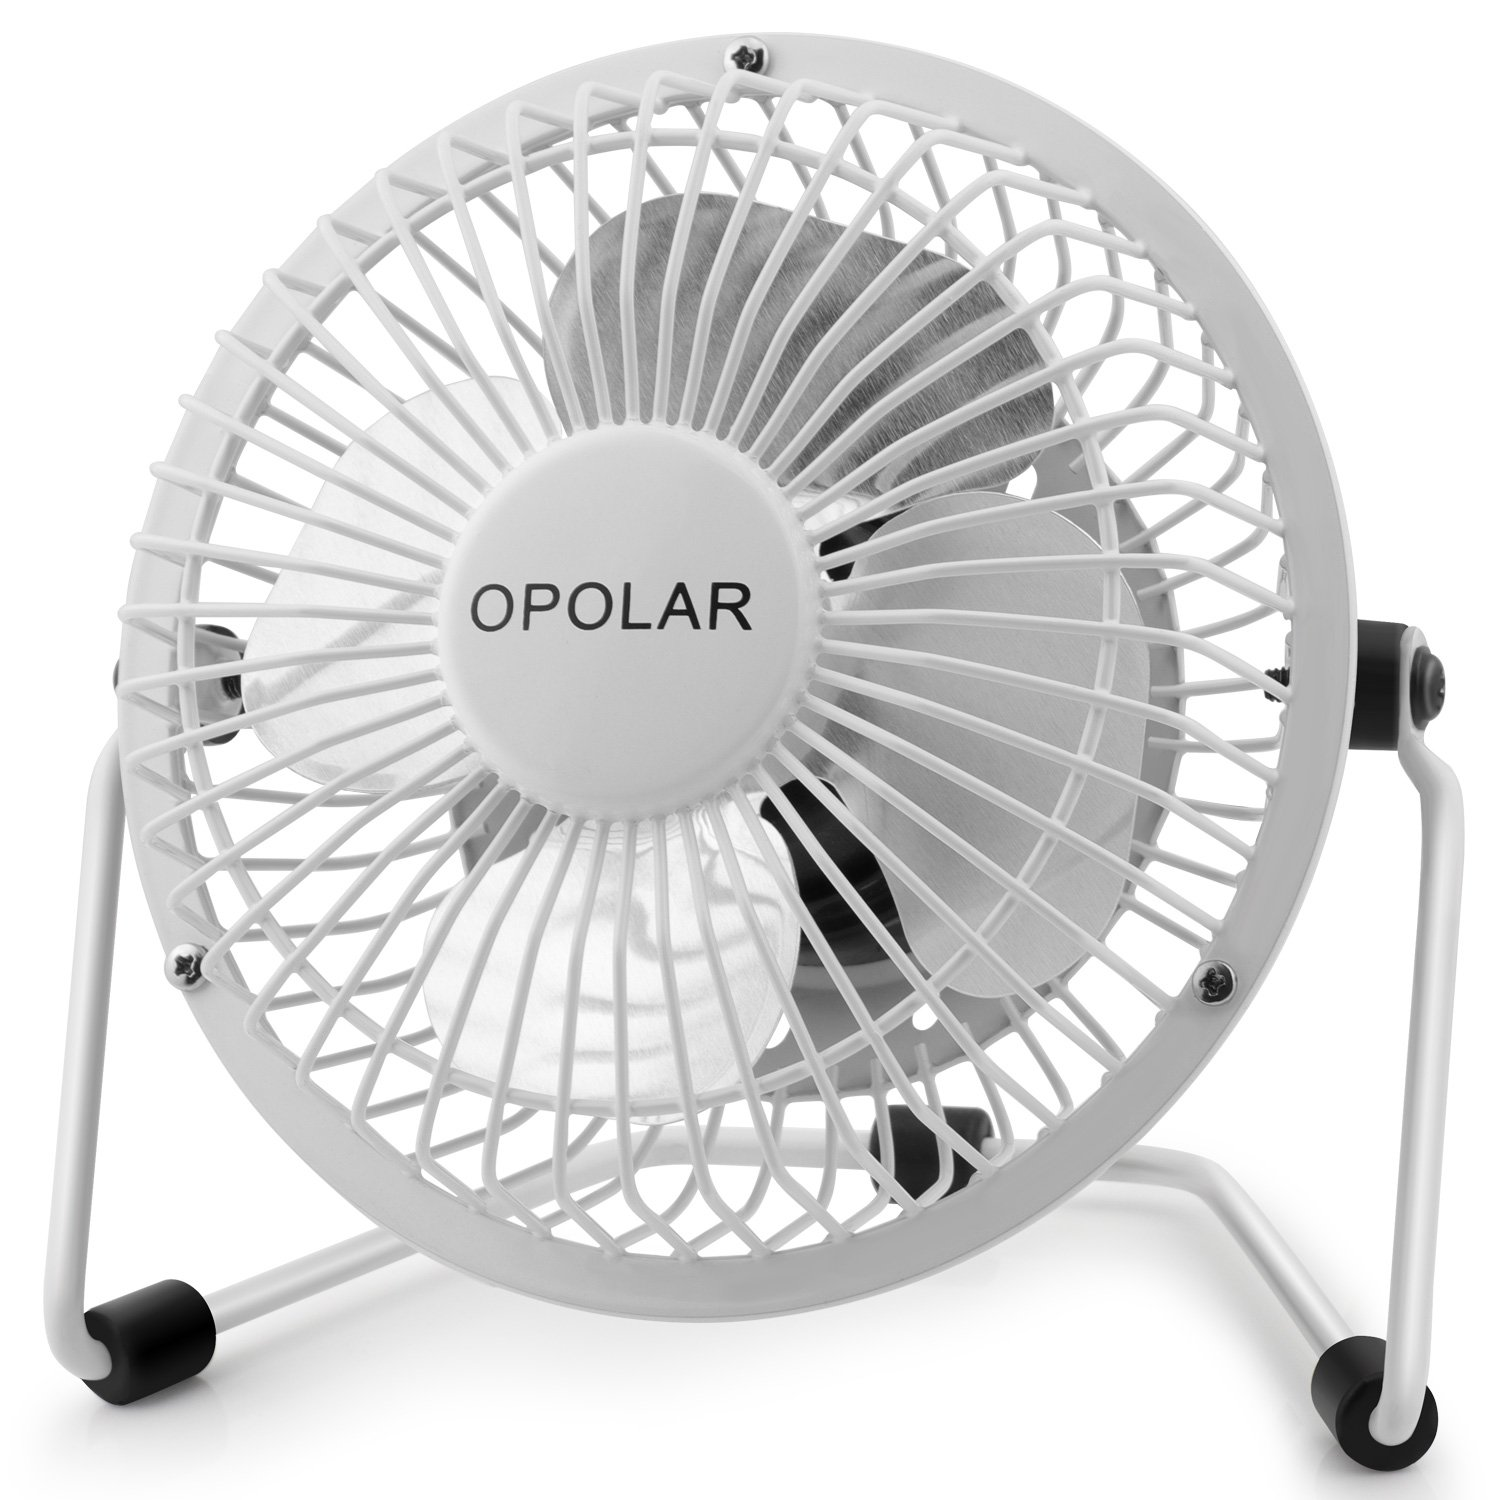 OPOLAR Mini USB Desk Fan, Portable Super Quiet, Metal Design, 4 Inch Cooling Fan for Home, Office, White